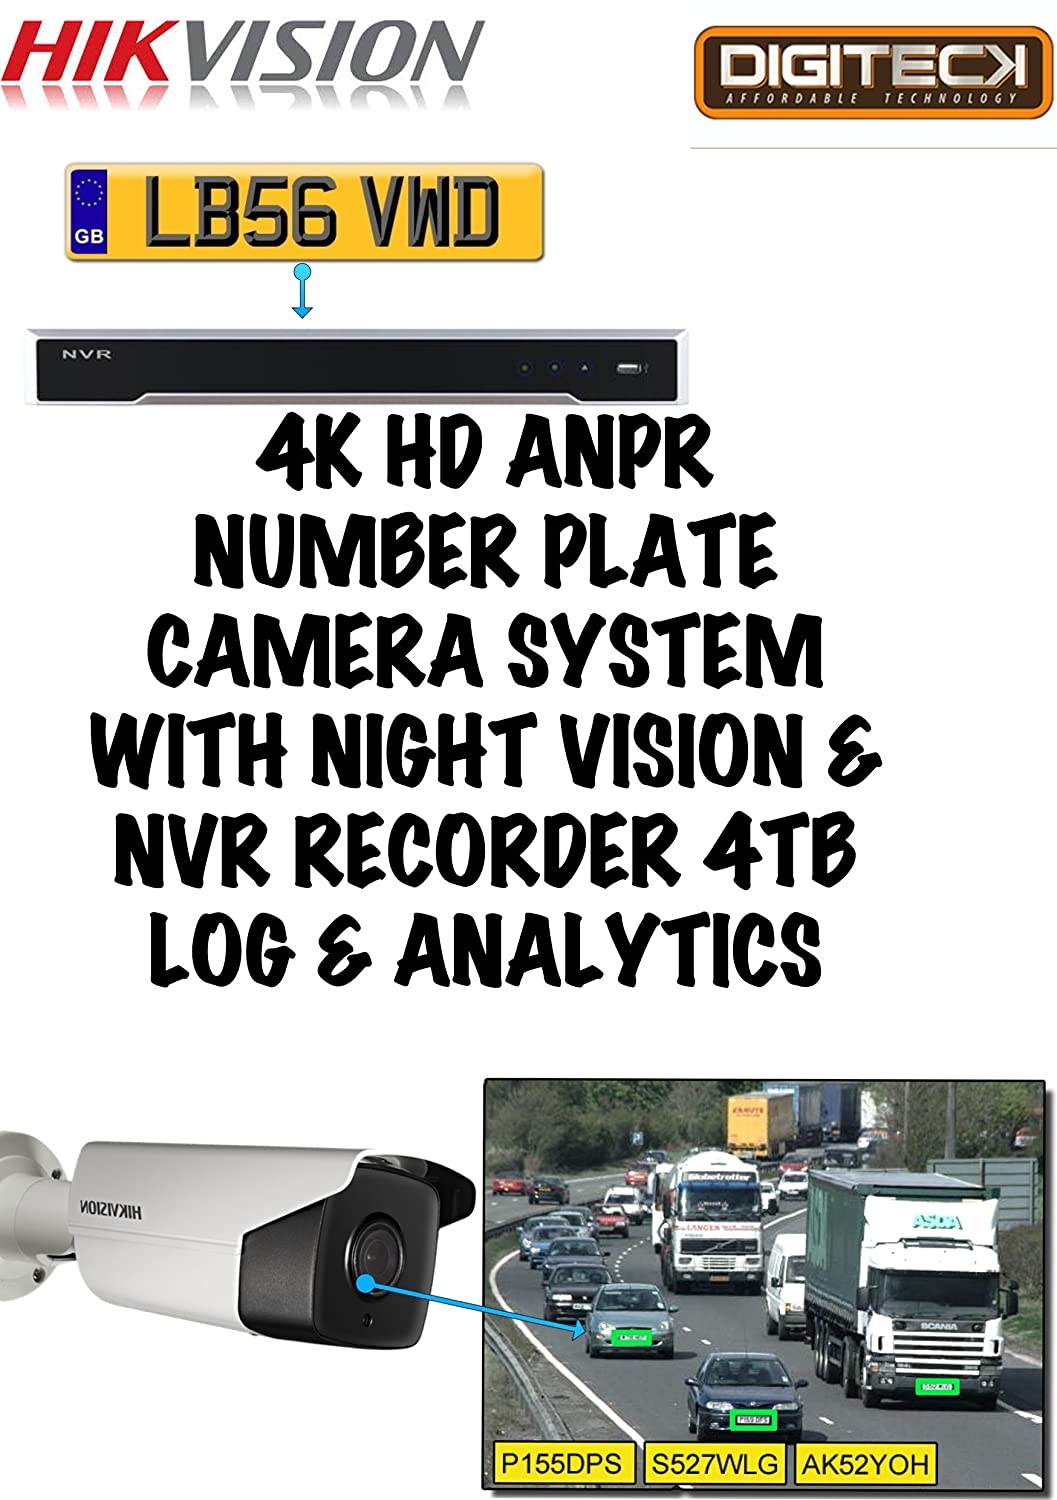 4K HD ANPR Number Plate Recognition Camera System Night